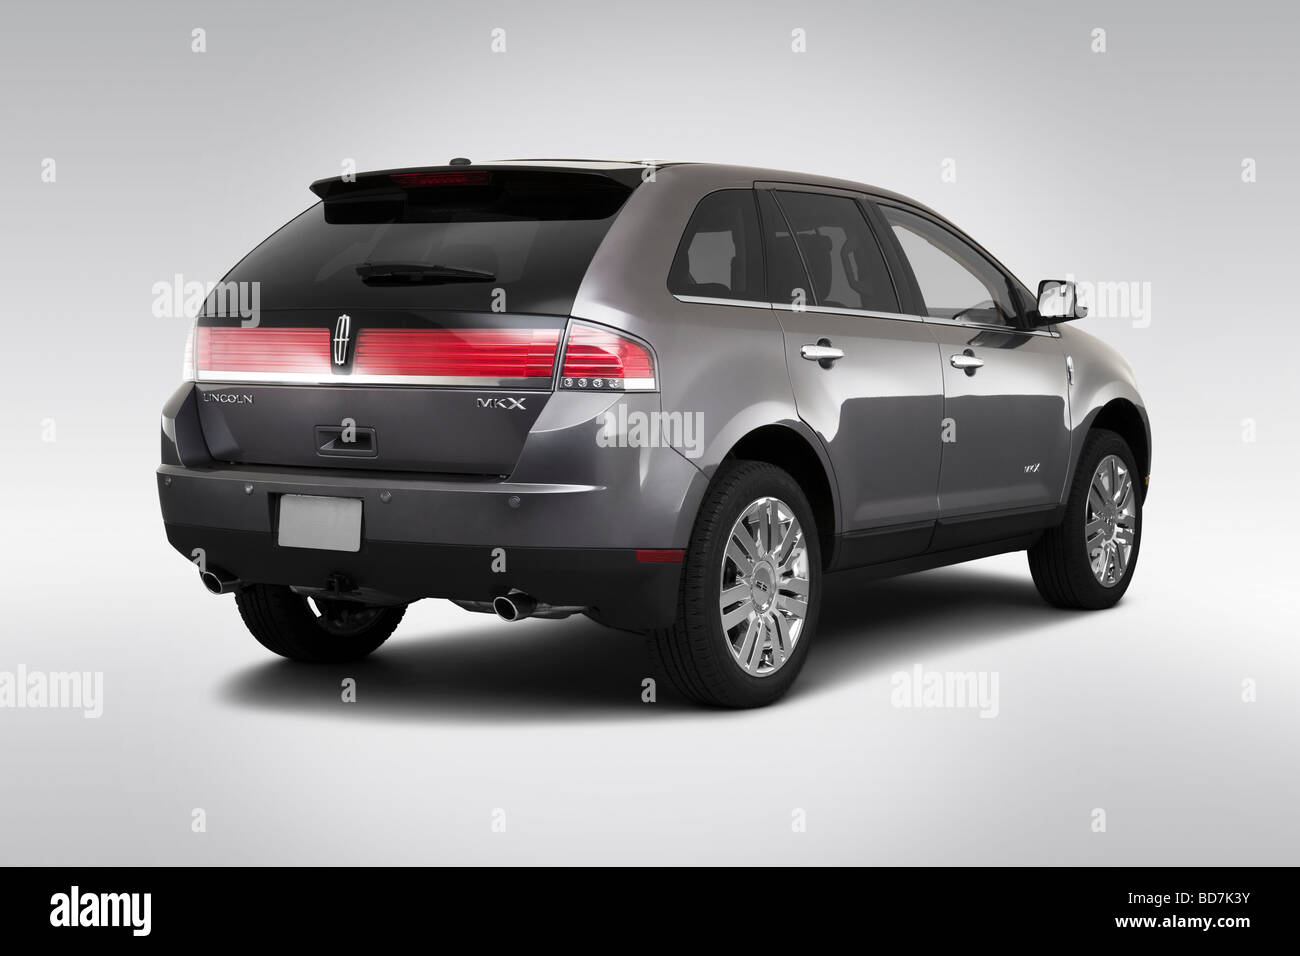 interior reviews price drive features sedan mkz mkx lincoln driver front wheel side base photos